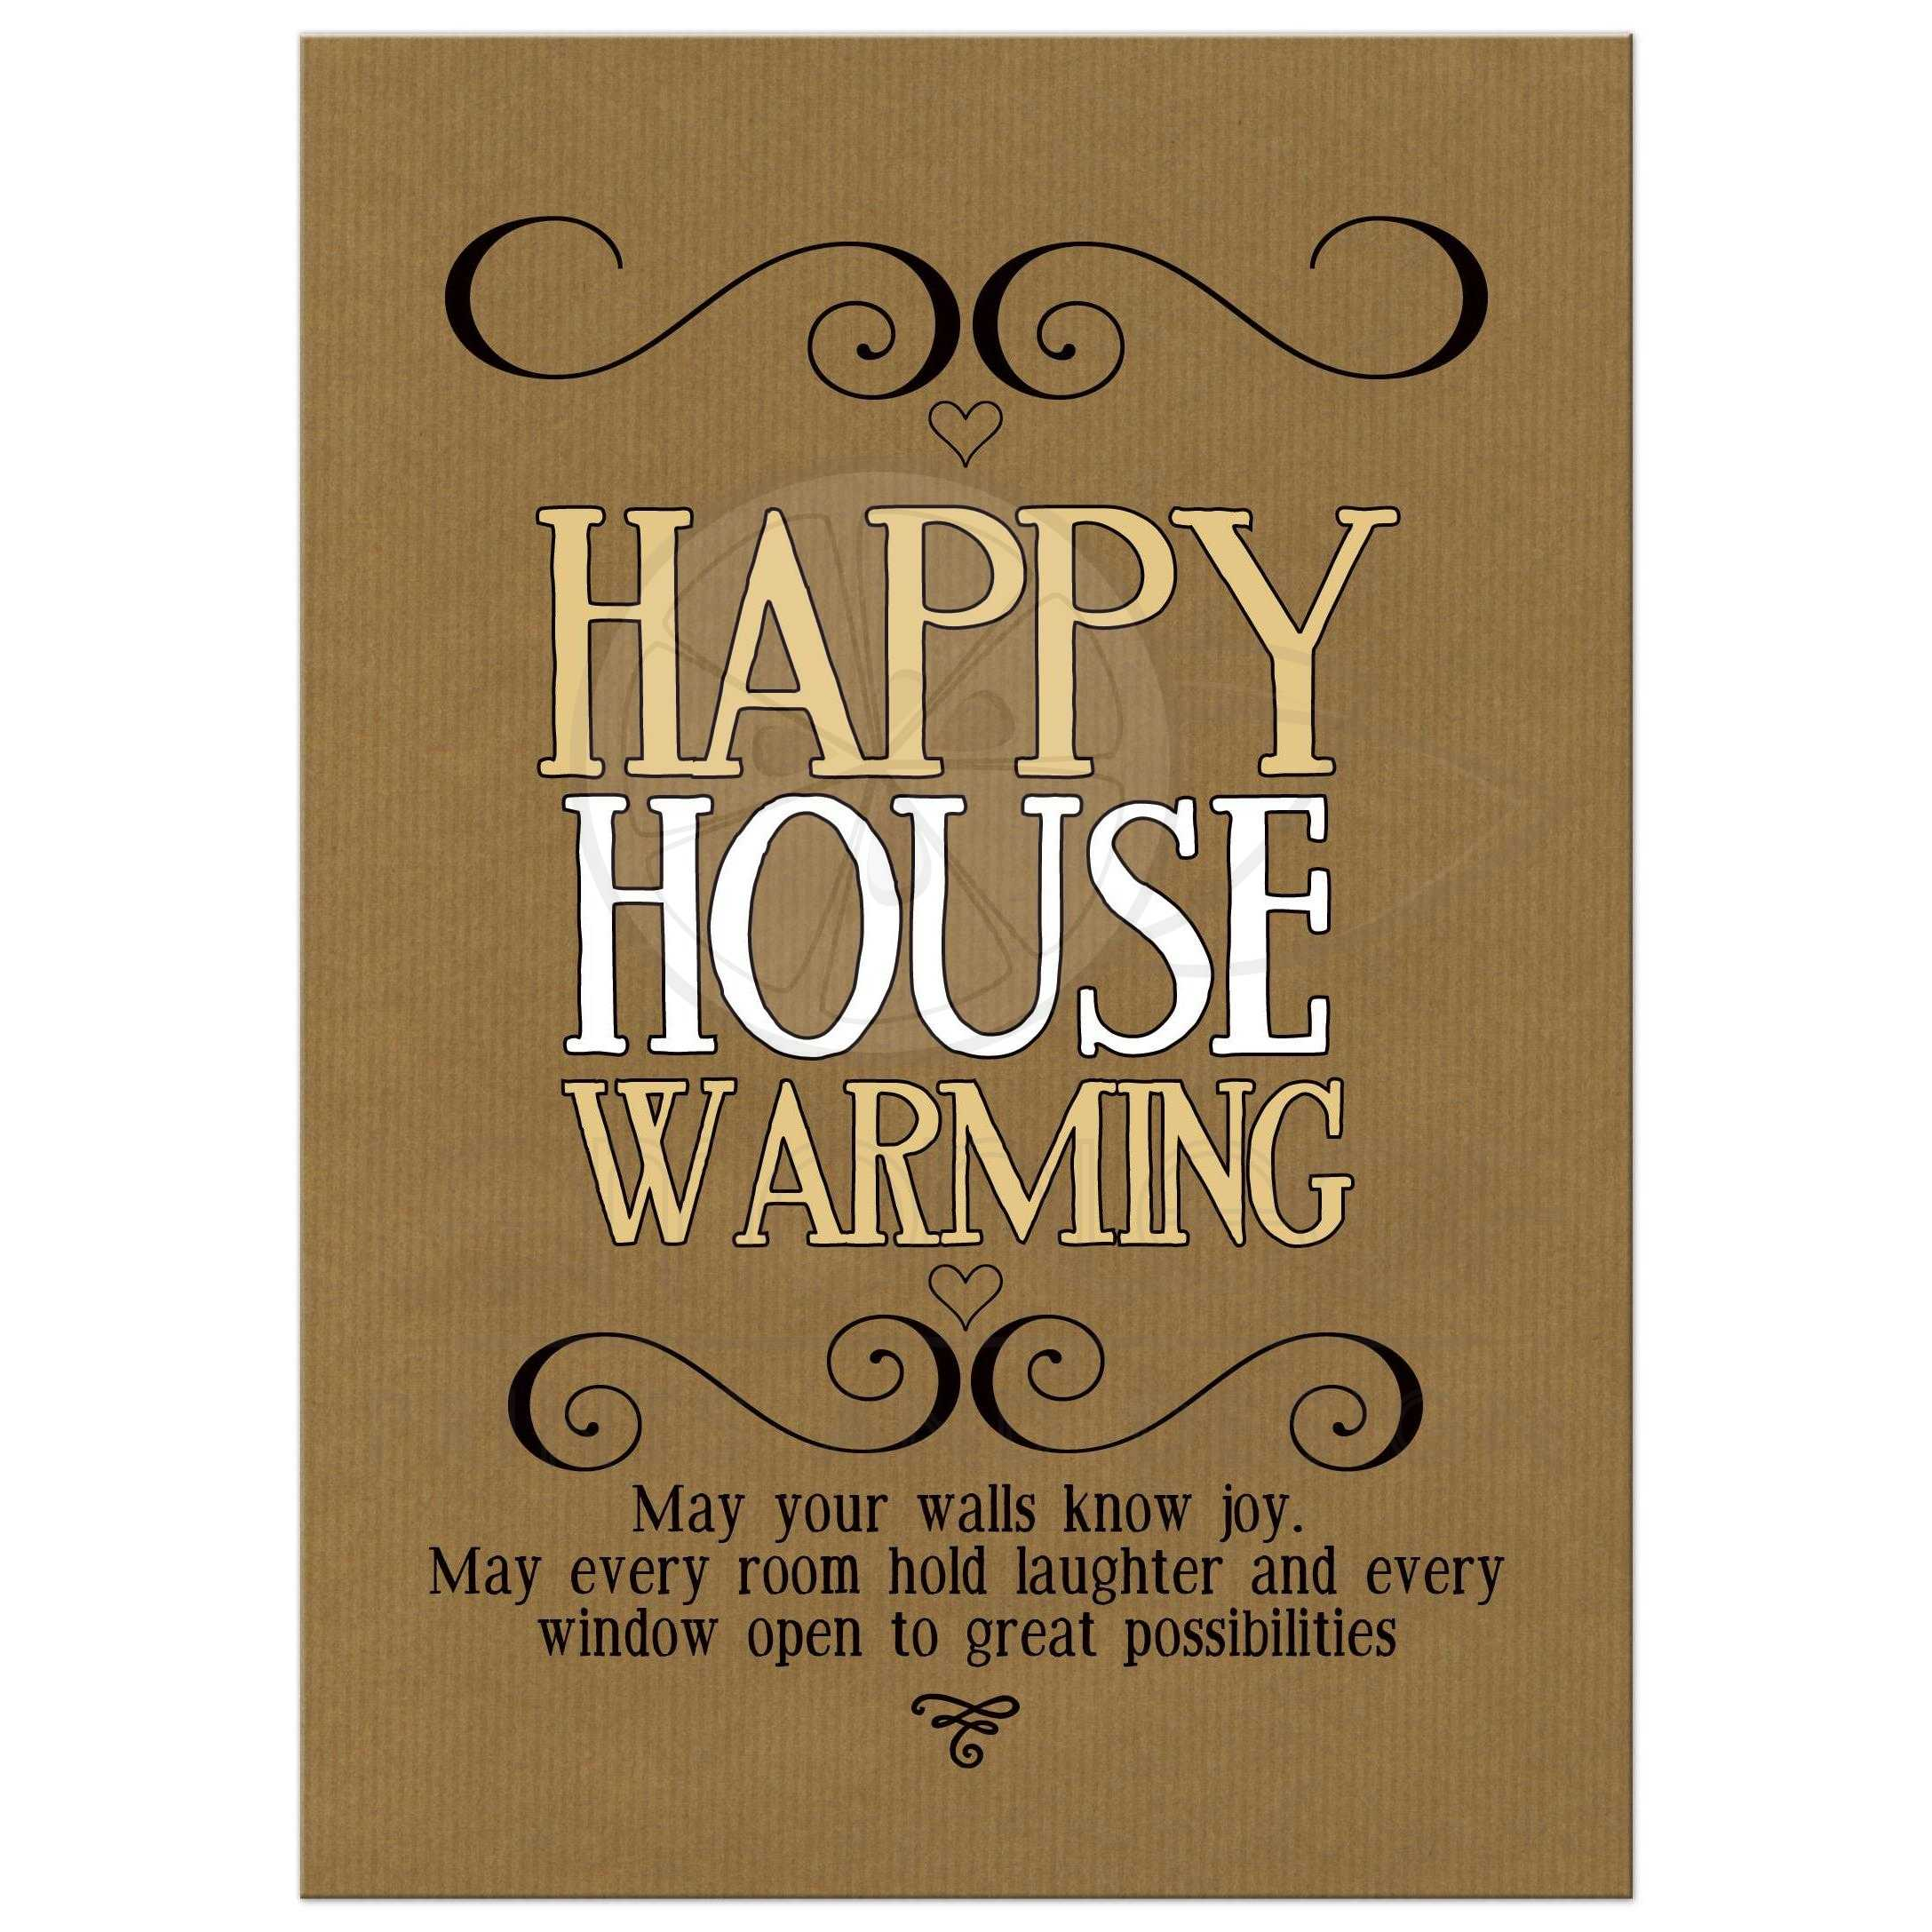 House warming wishes card house designer today happy housewarming wishes card rh lemonleafprints com house warming greeting cards house warming wishes greetings m4hsunfo